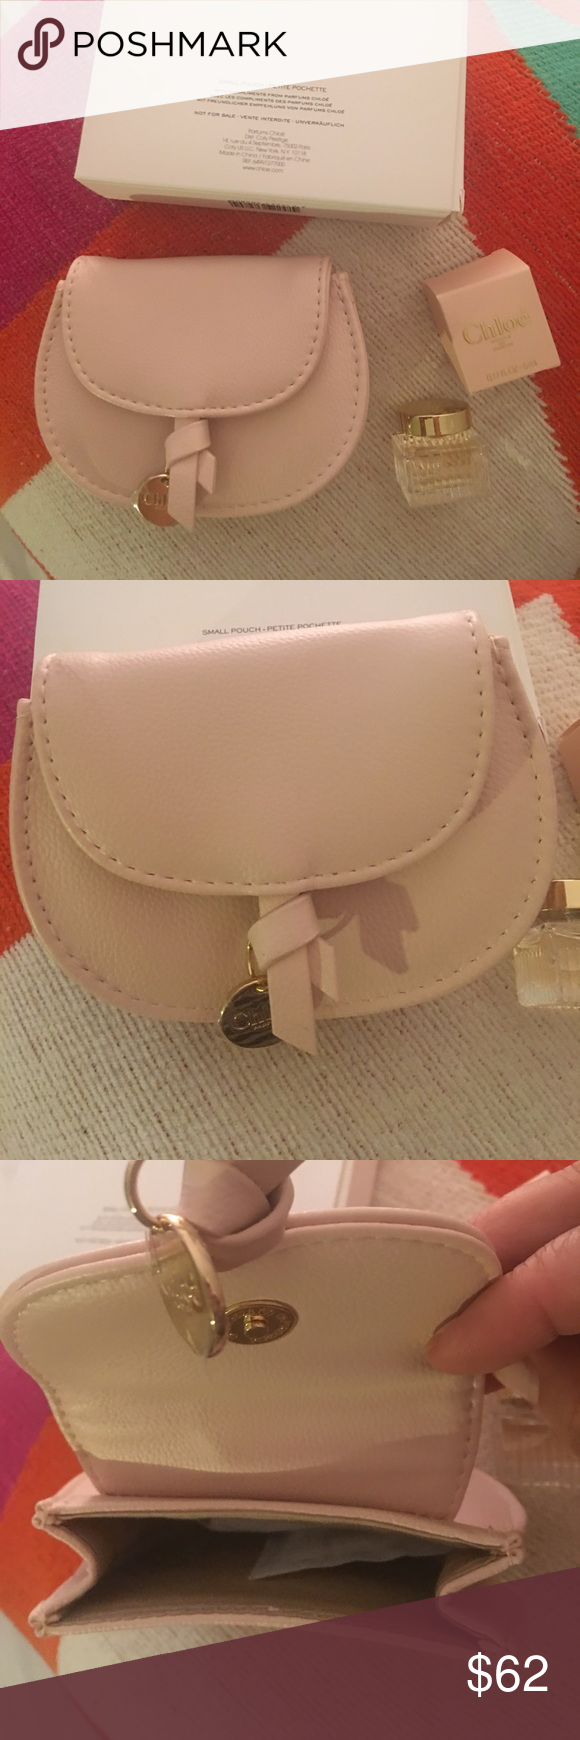 CHLOE SMALL POUCH WITH PARFUM CHLOE SMALL PETITE POUCHETTE. Received as a  gift with my purchase VIP Client.COMES WITH BOX (pouch and perfume) Chloe  Bags ... ce6e6534649ea